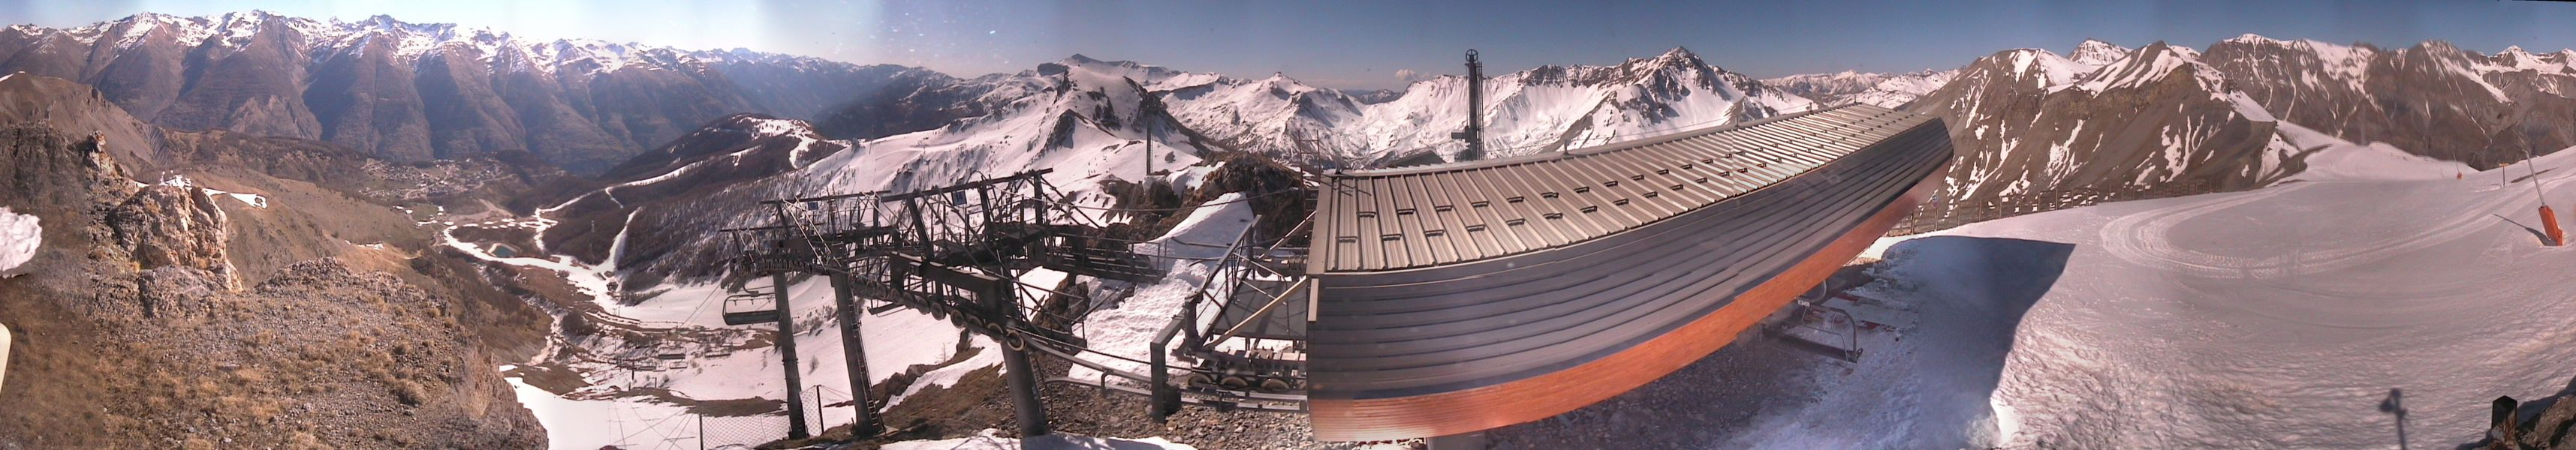 Webcam panoramique de Chavalet (Dôme) à Auron